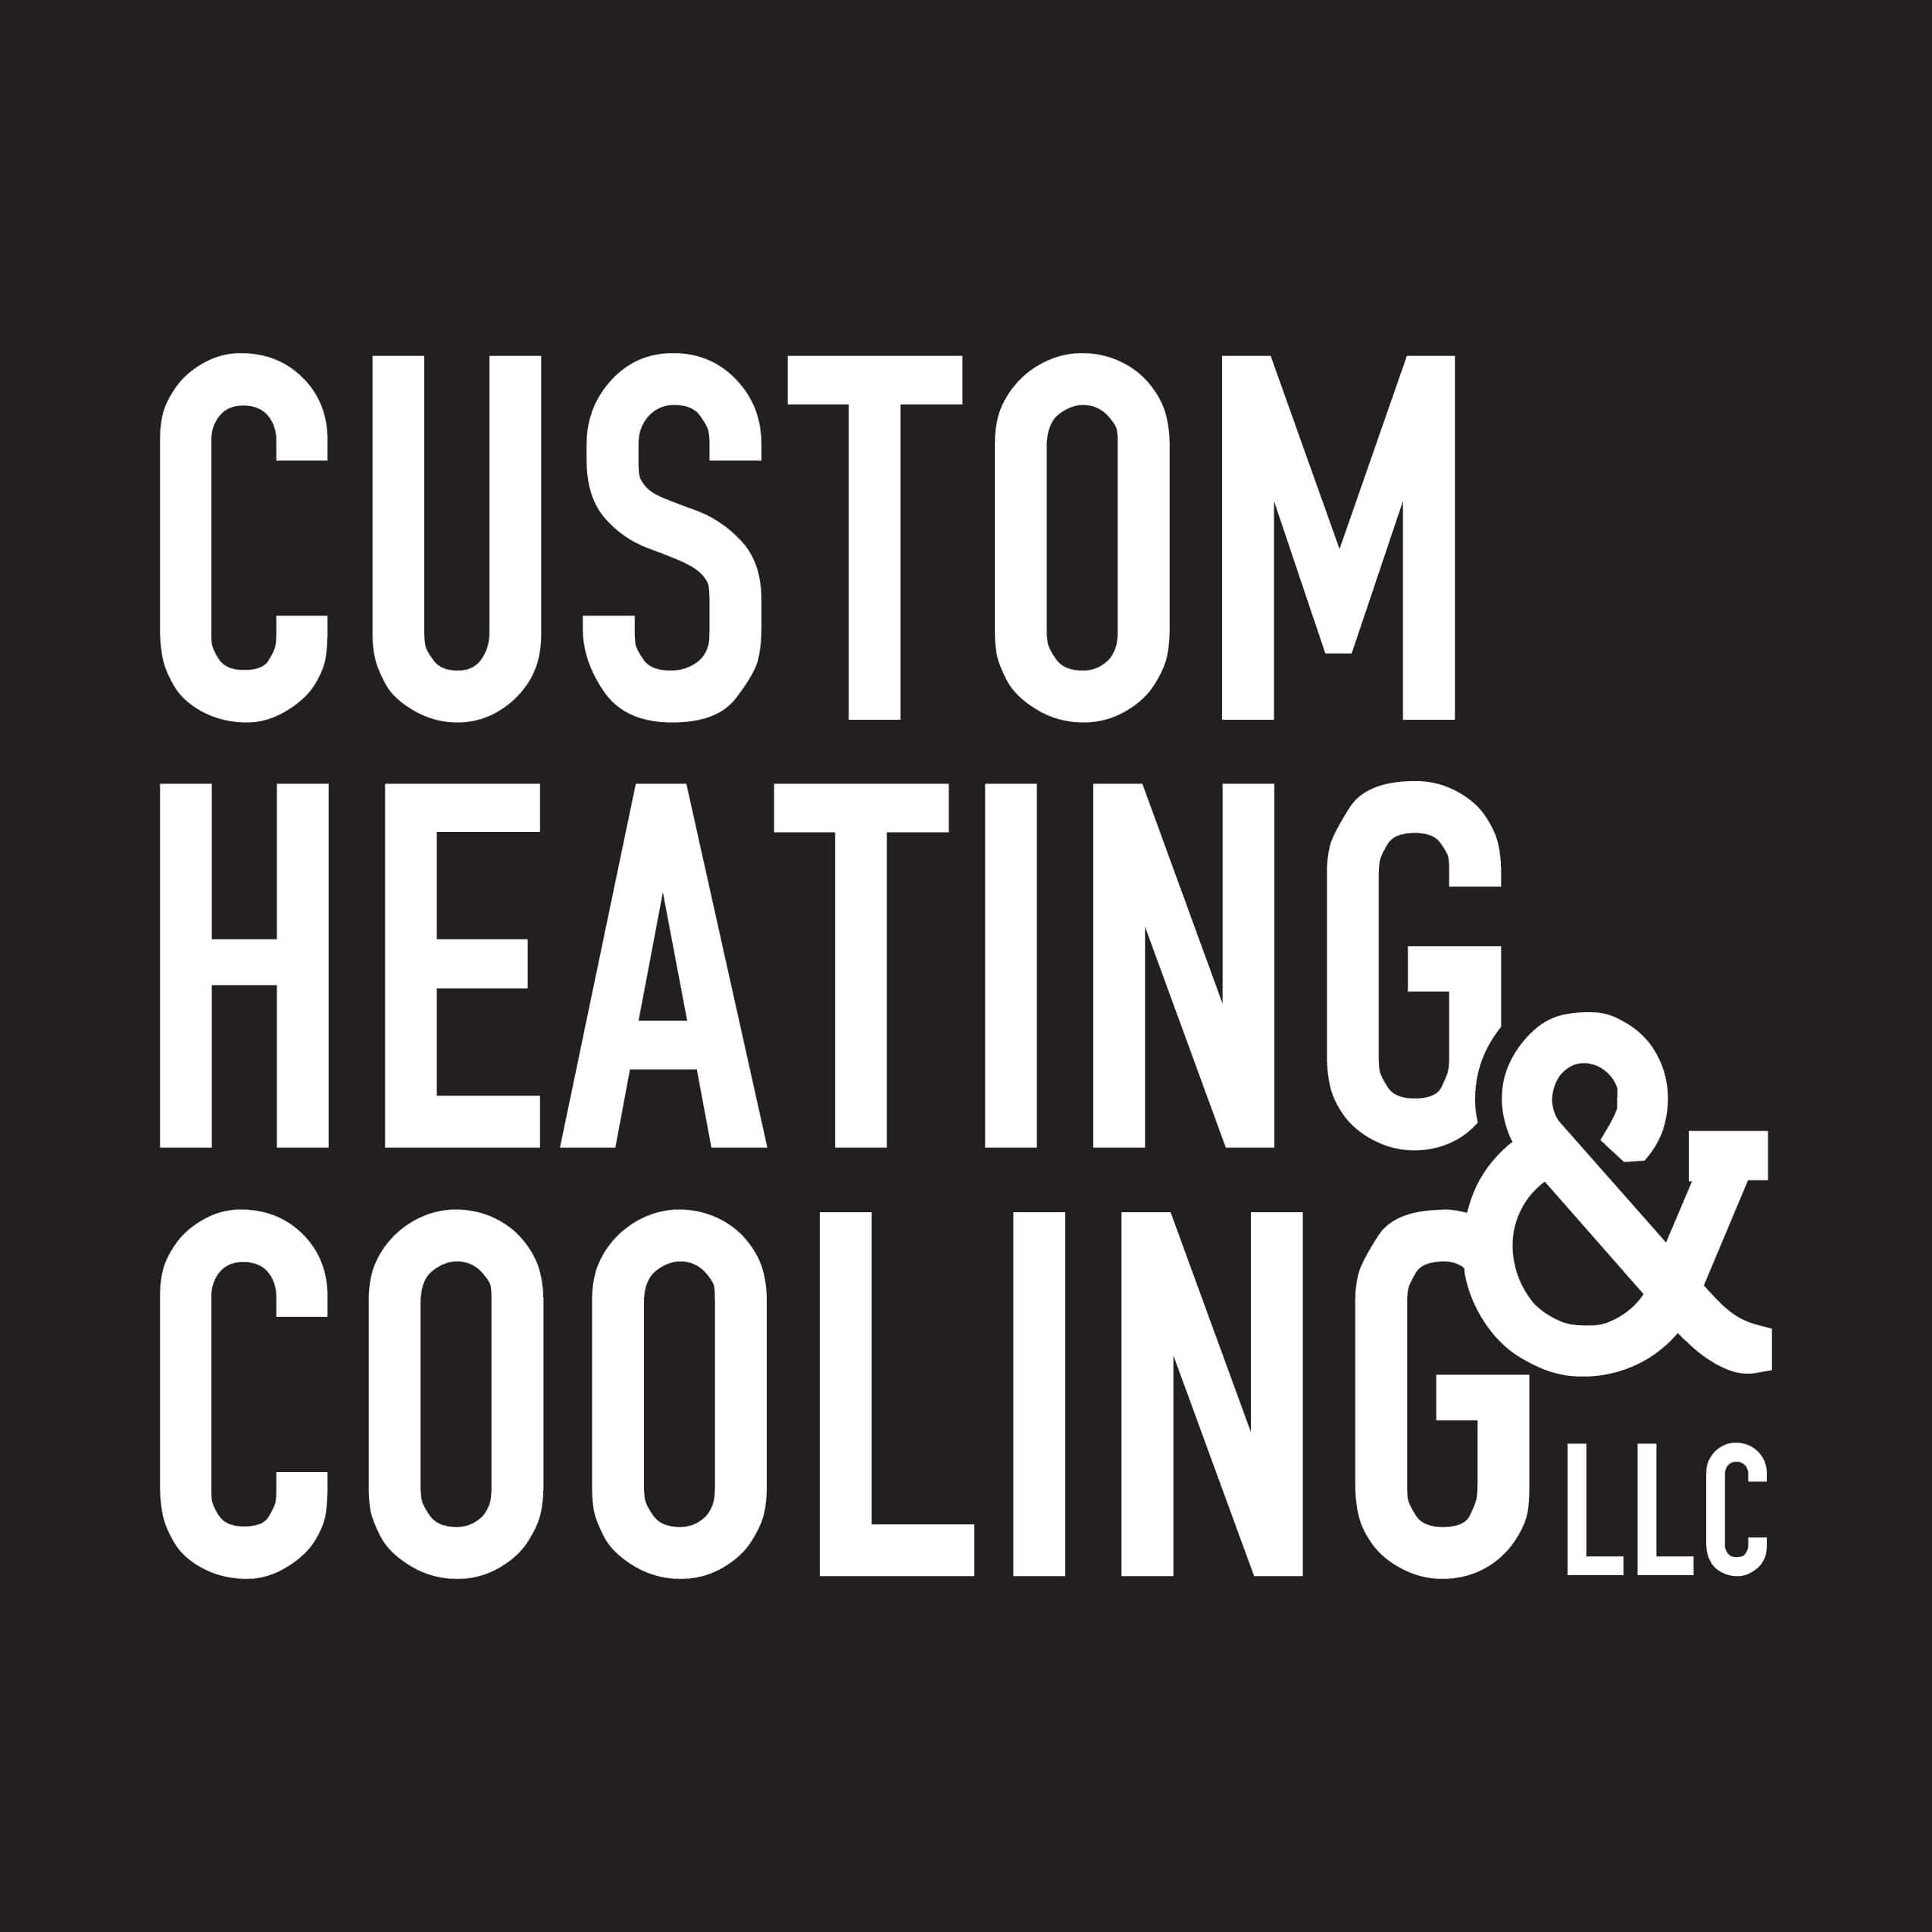 Custom Heating and Cooling LLC